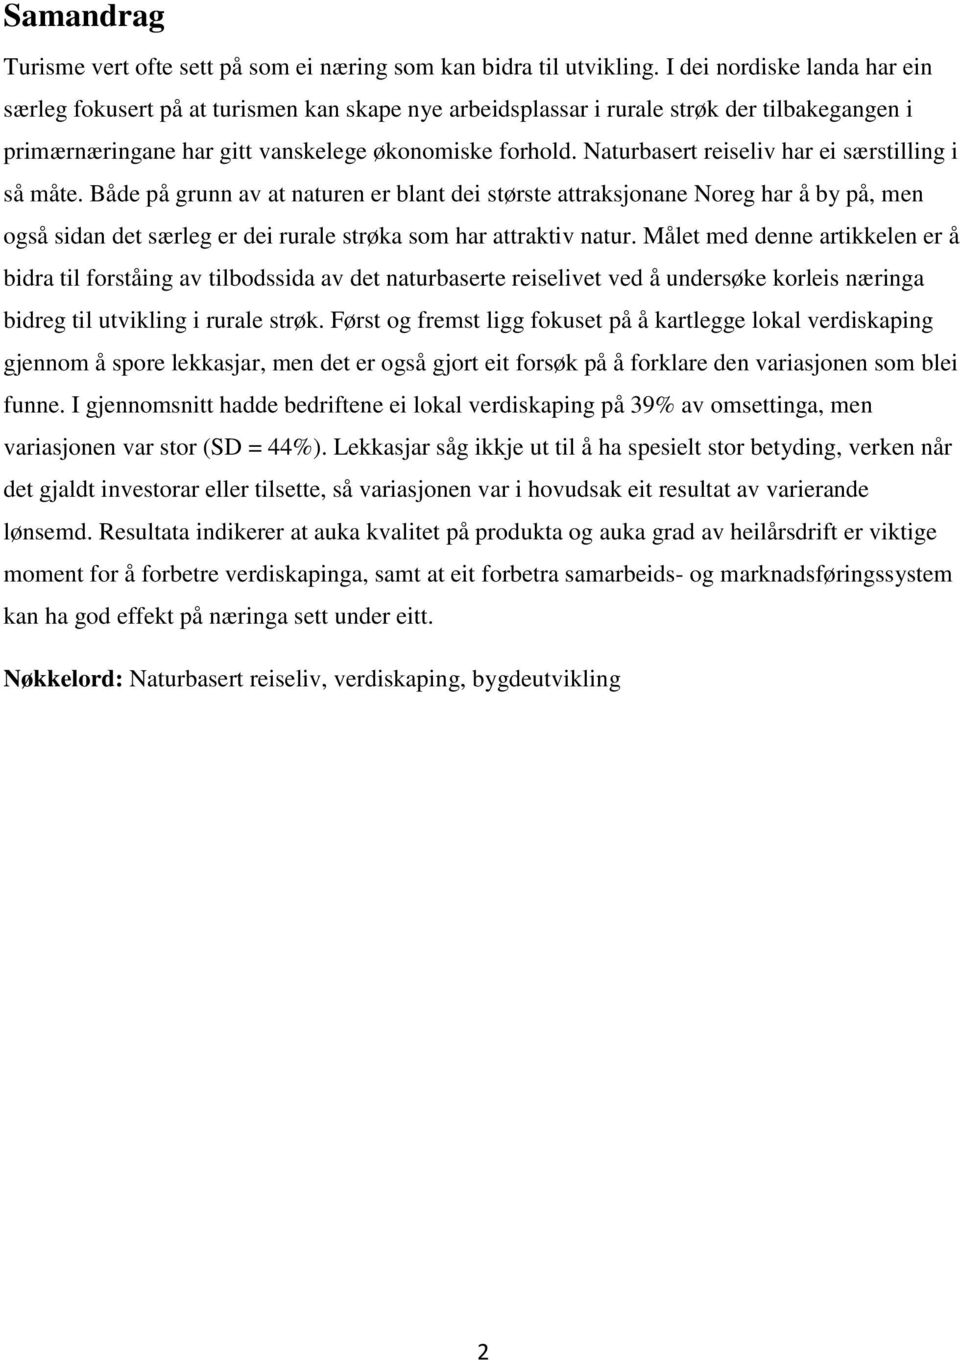 dffa2331 Nature-based tourism as a tool for rural development in Norway - PDF